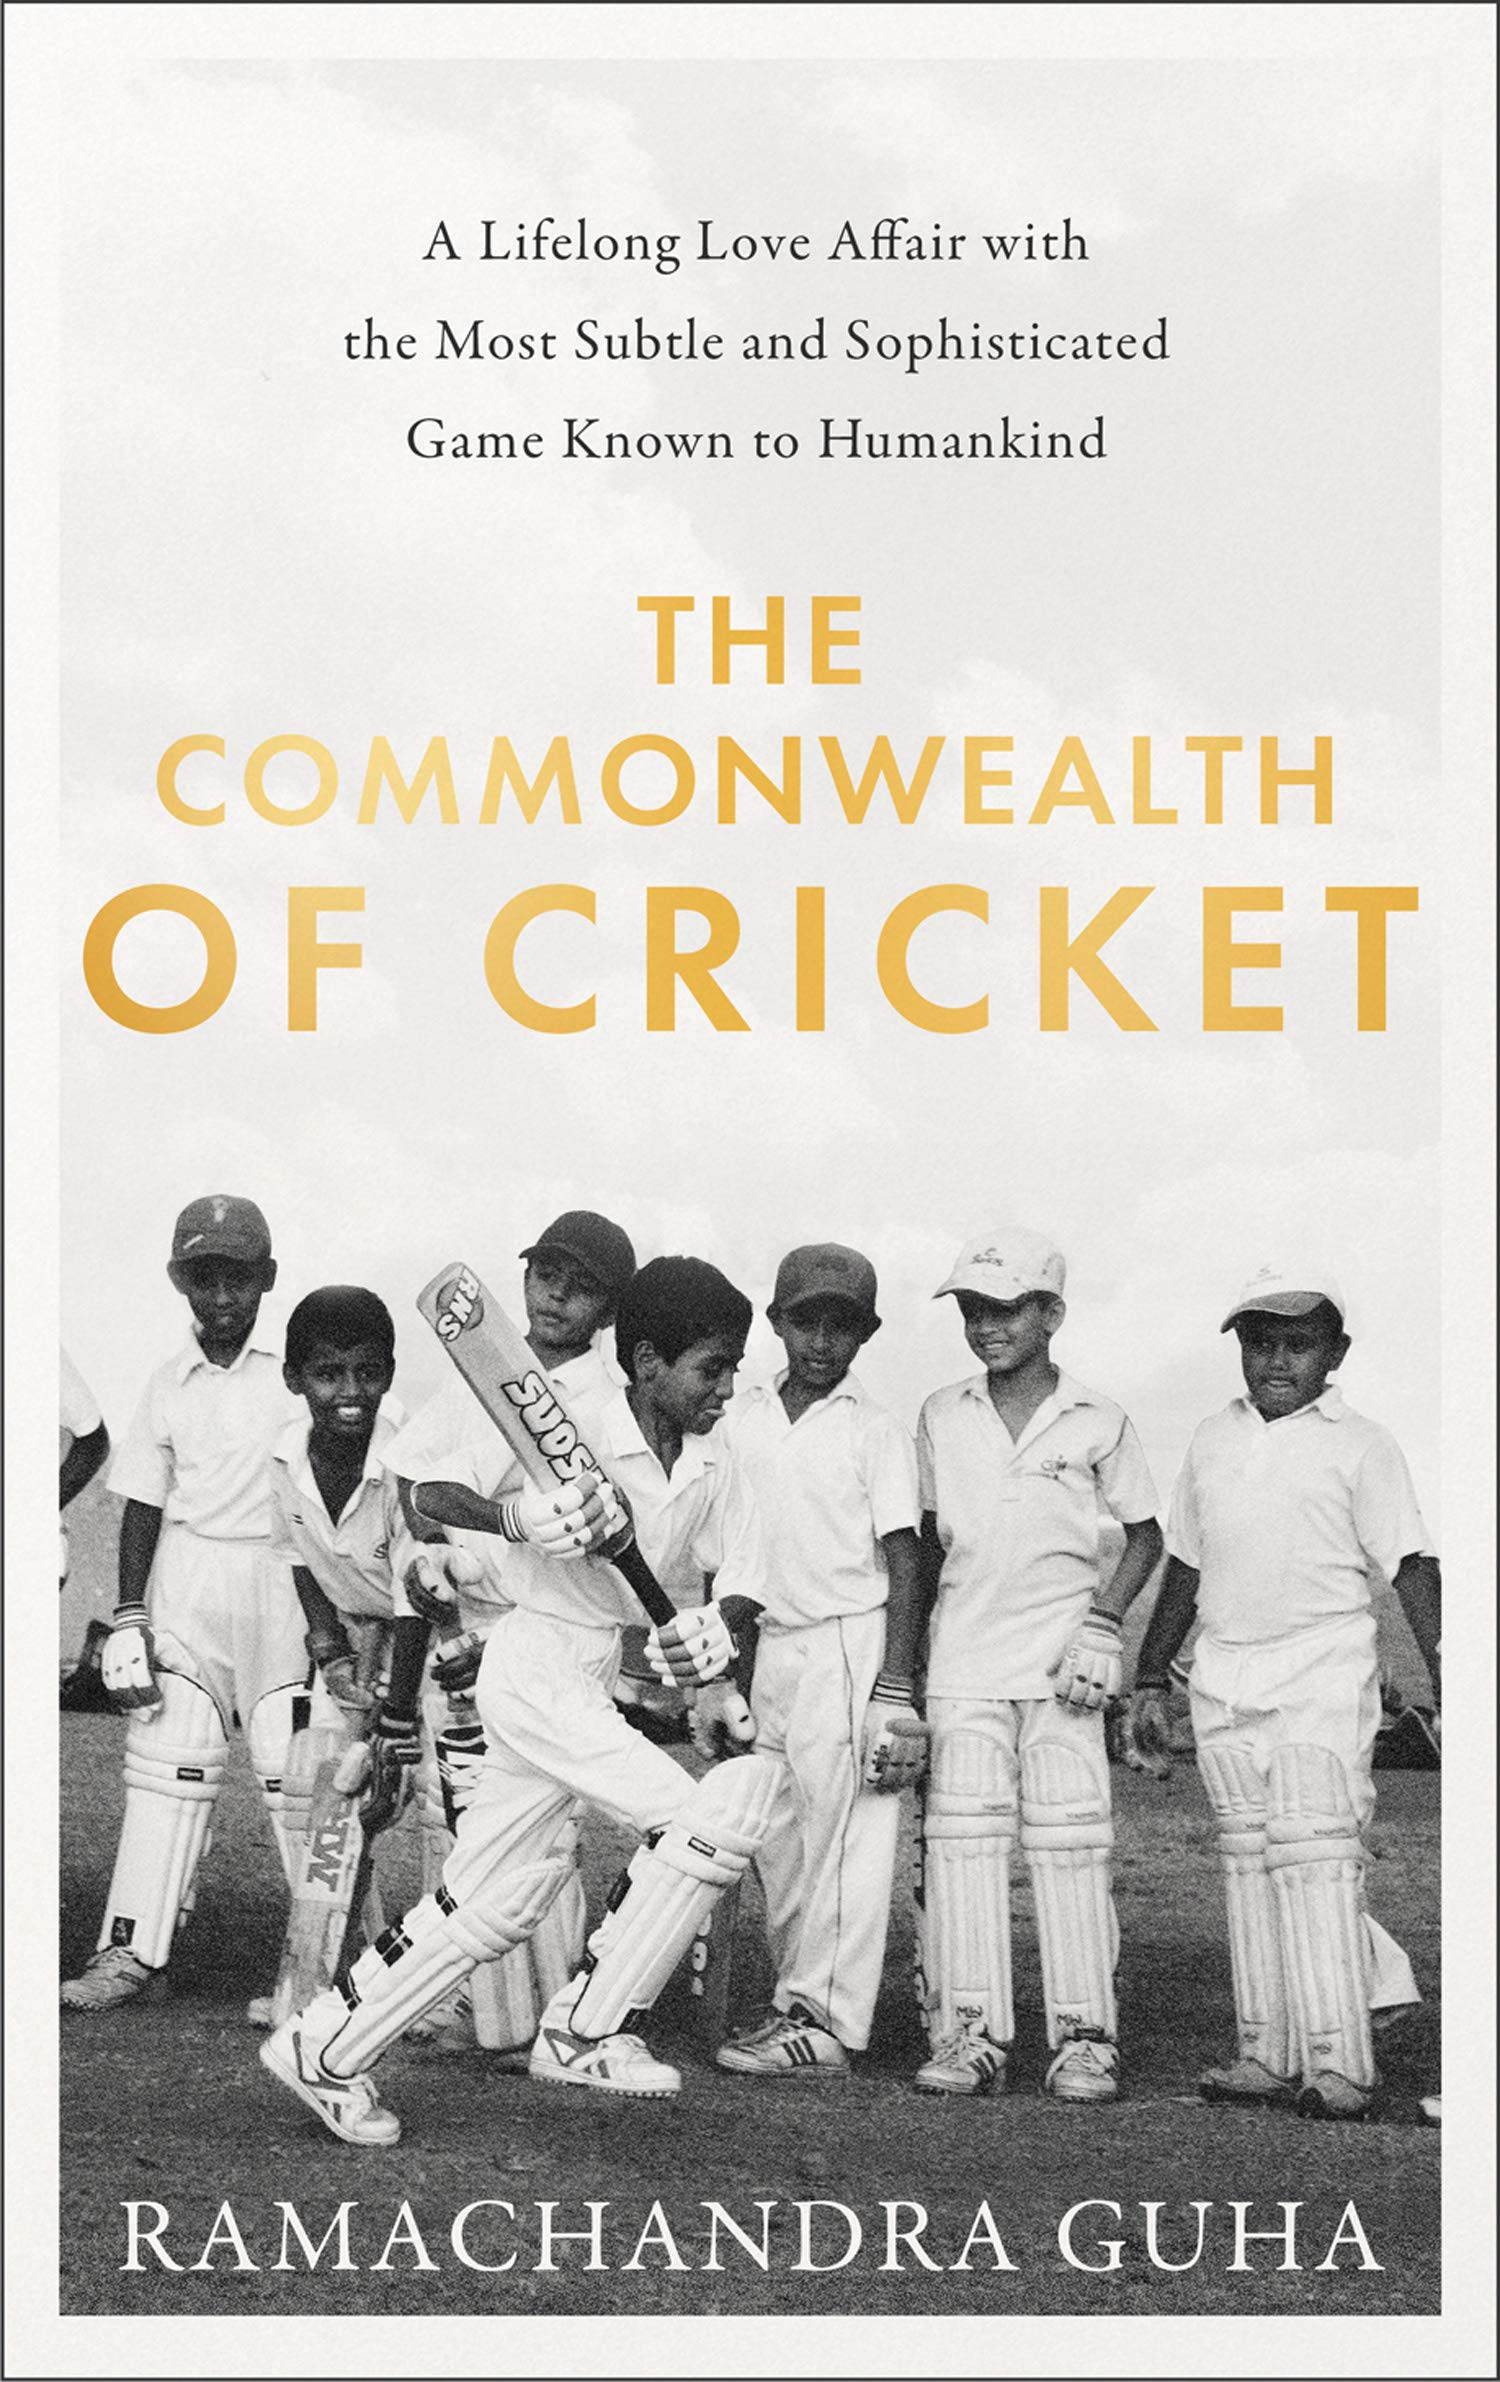 The cover of The Commonwealth of Cricket